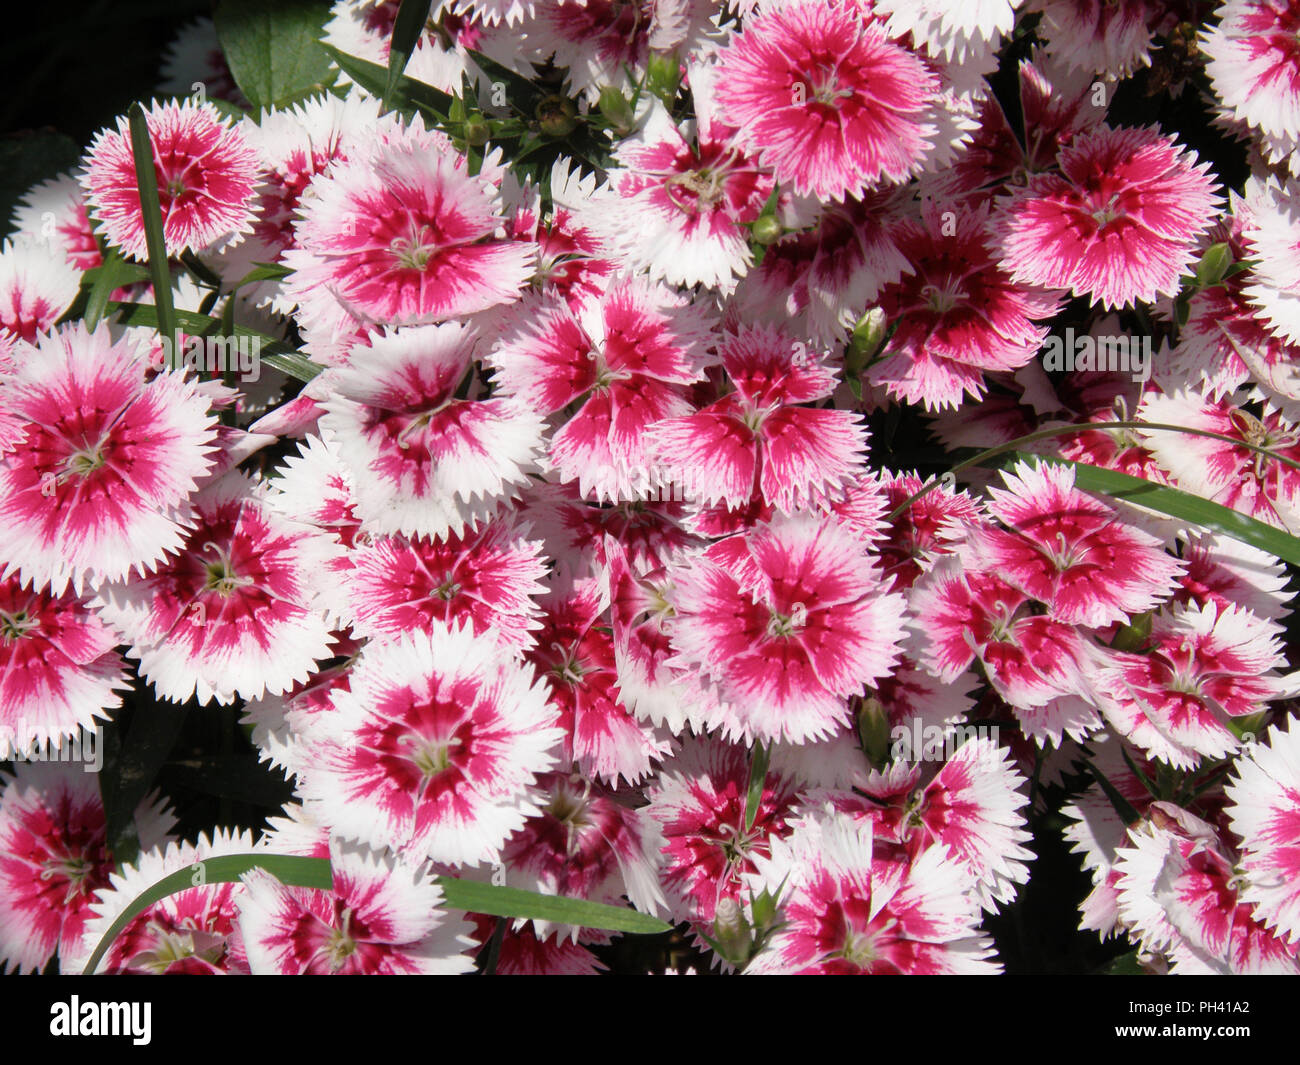 Blooming white and pink sweet Williams flowers in a garden. - Stock Image